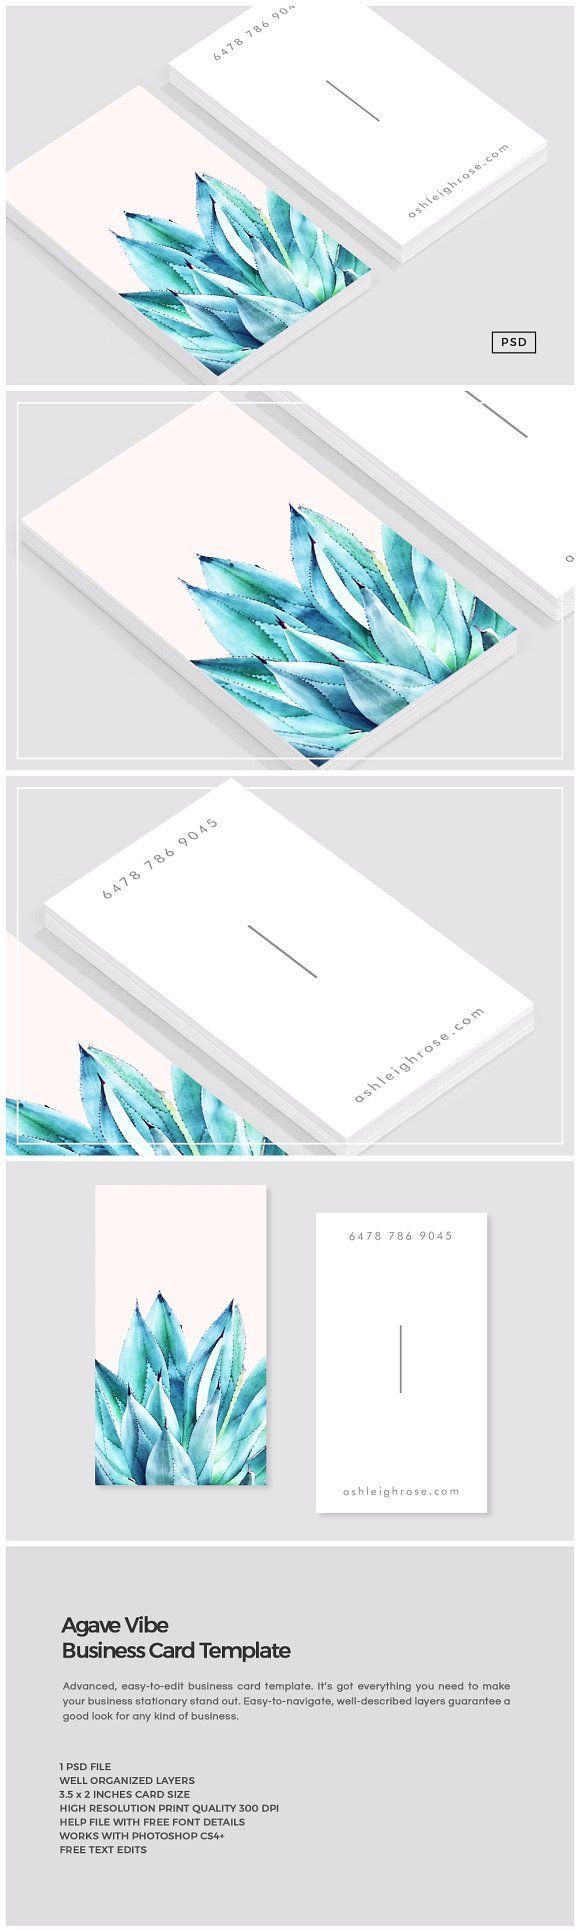 Agave Vibe Business Card Template Card Templates Business Cards